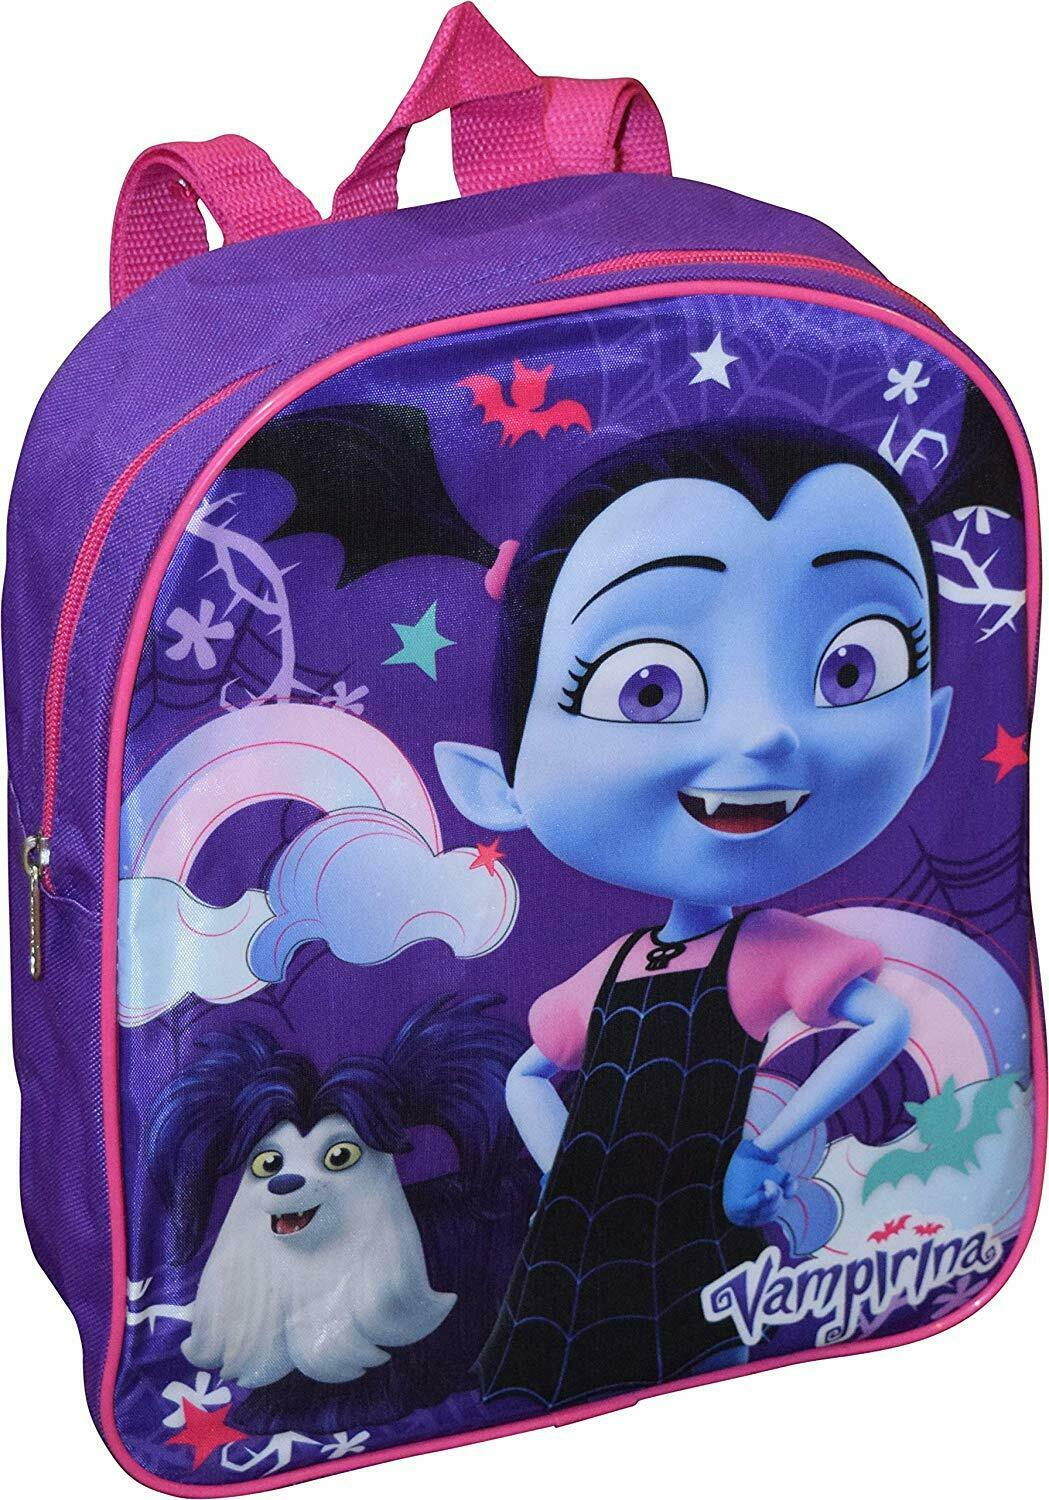 Disney Vampirina Girls Toddler Baby School Book bag Backpack